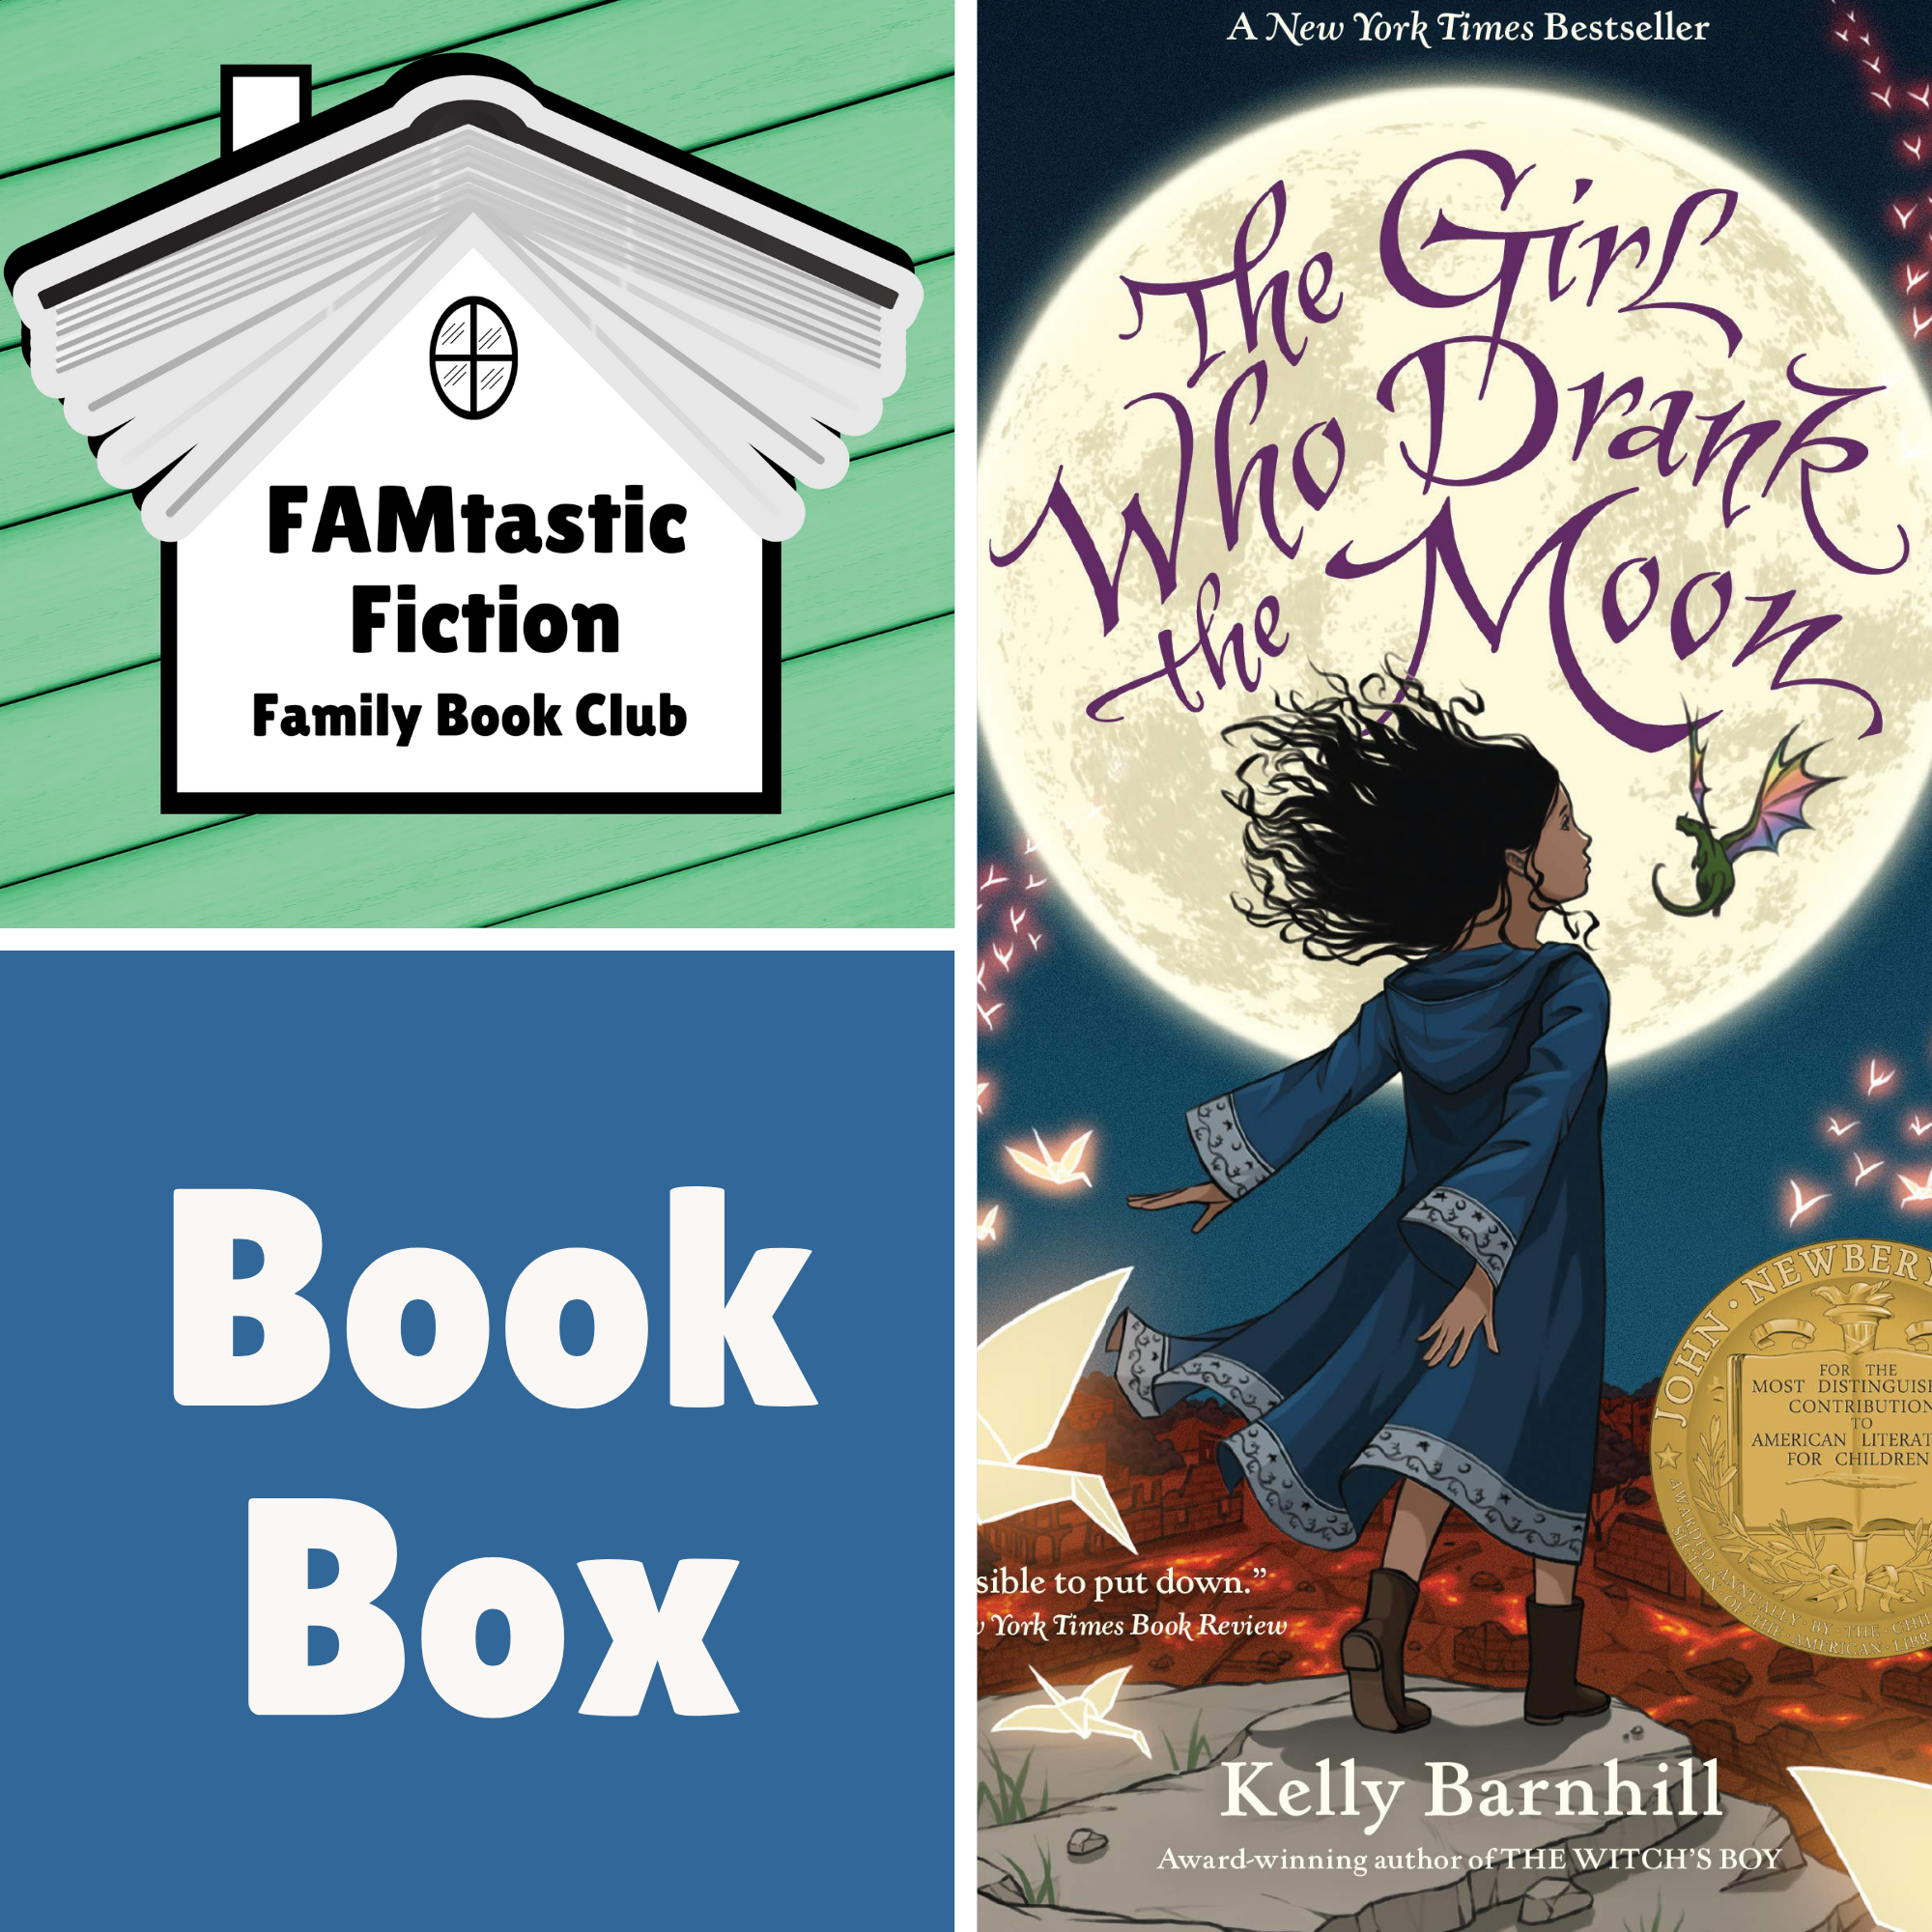 FAMtastic Fiction Book Box - The Girl Who Drank the Moon